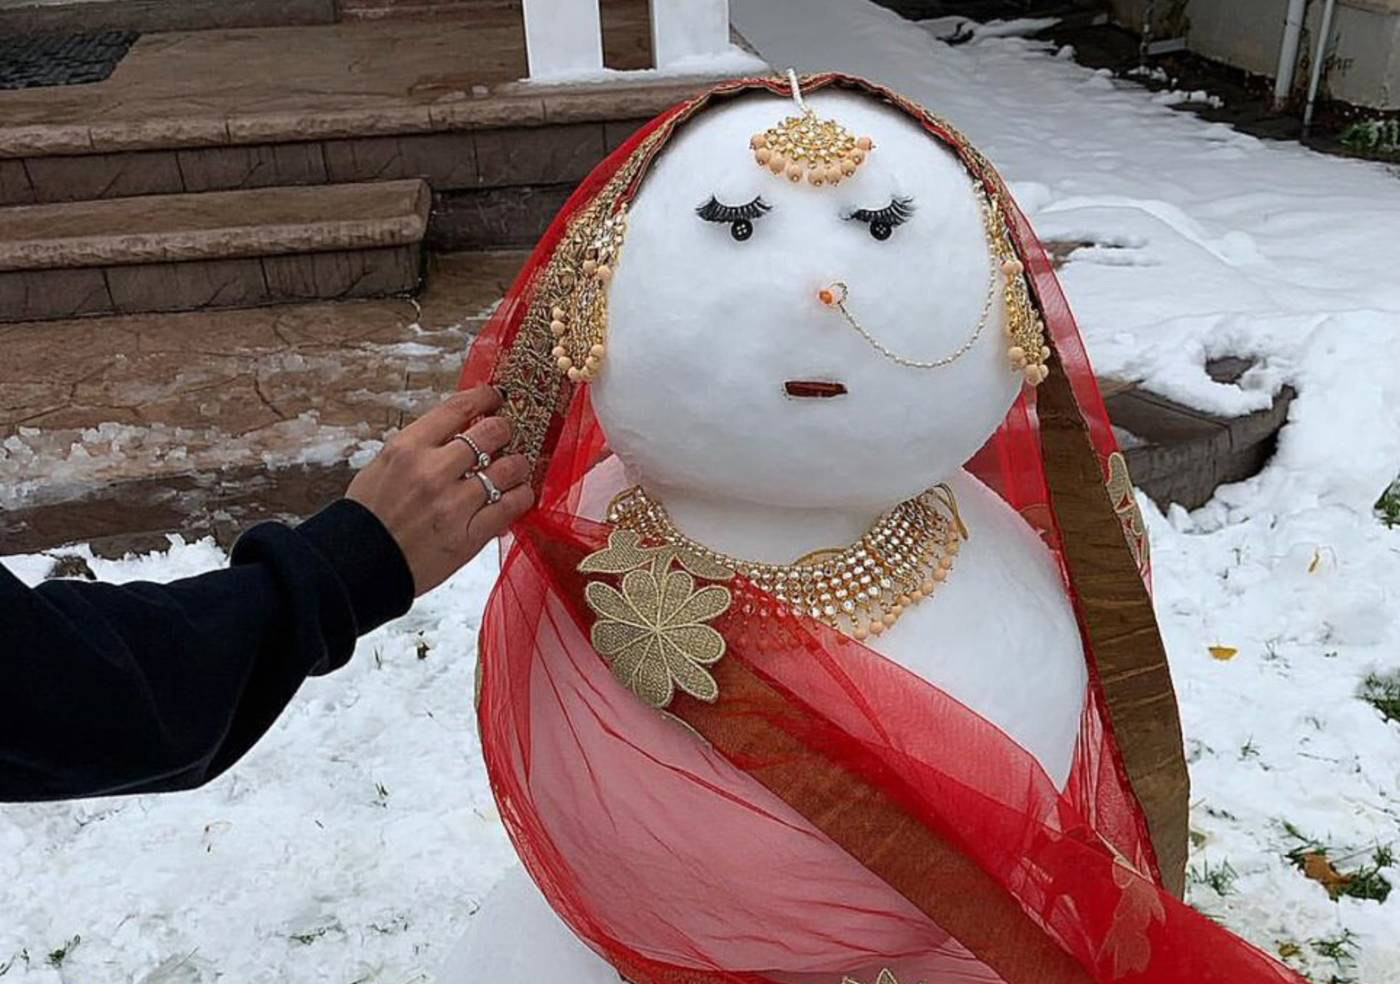 A snow-woman created to look like a South-Asian bride